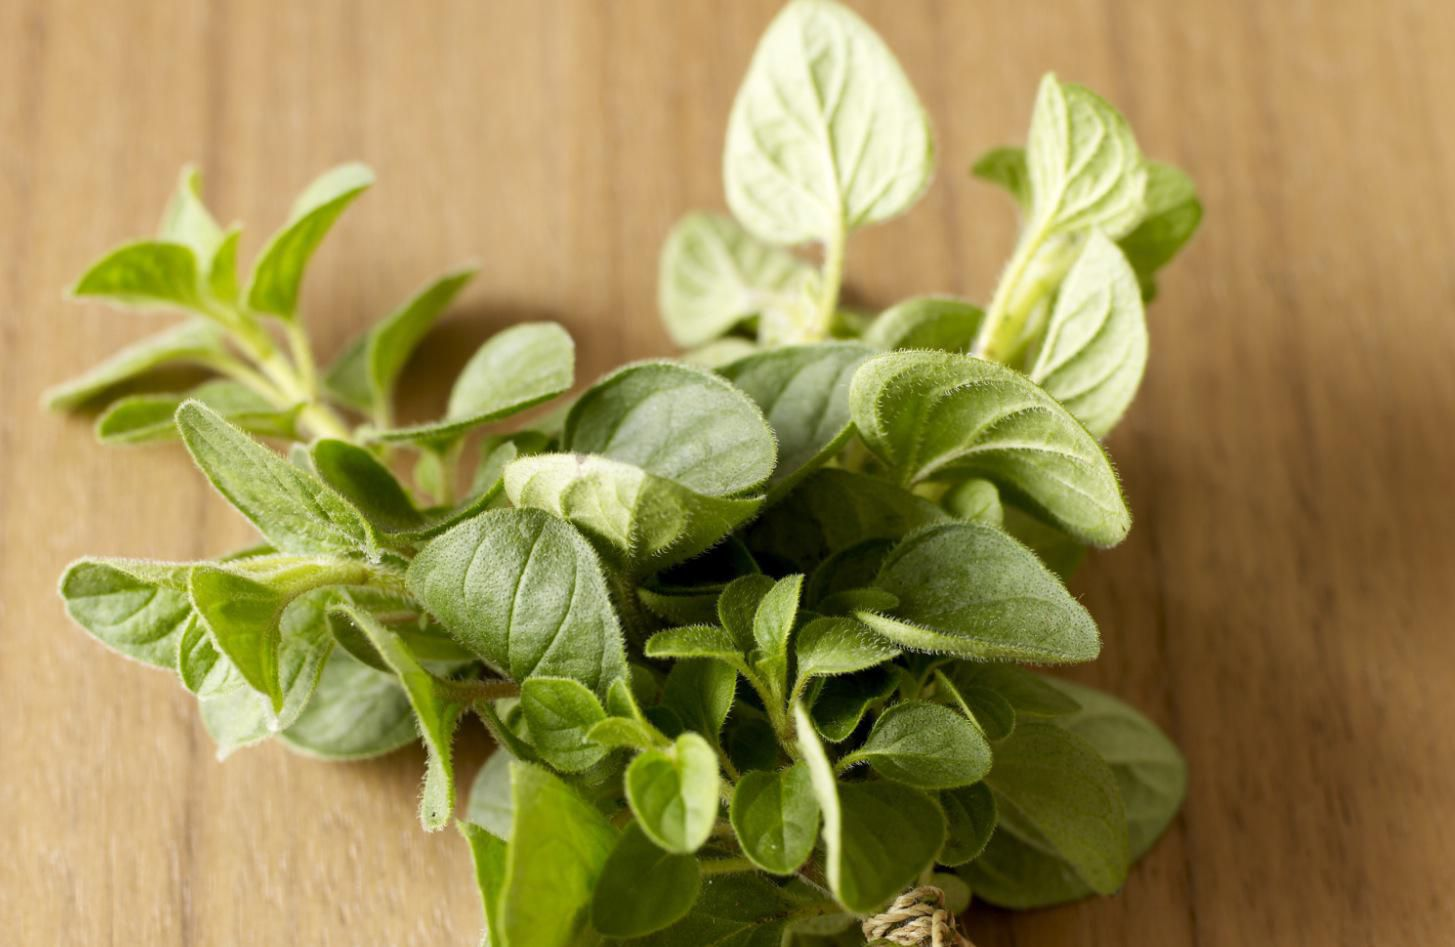 How to Grow and Care for Oregano Plants